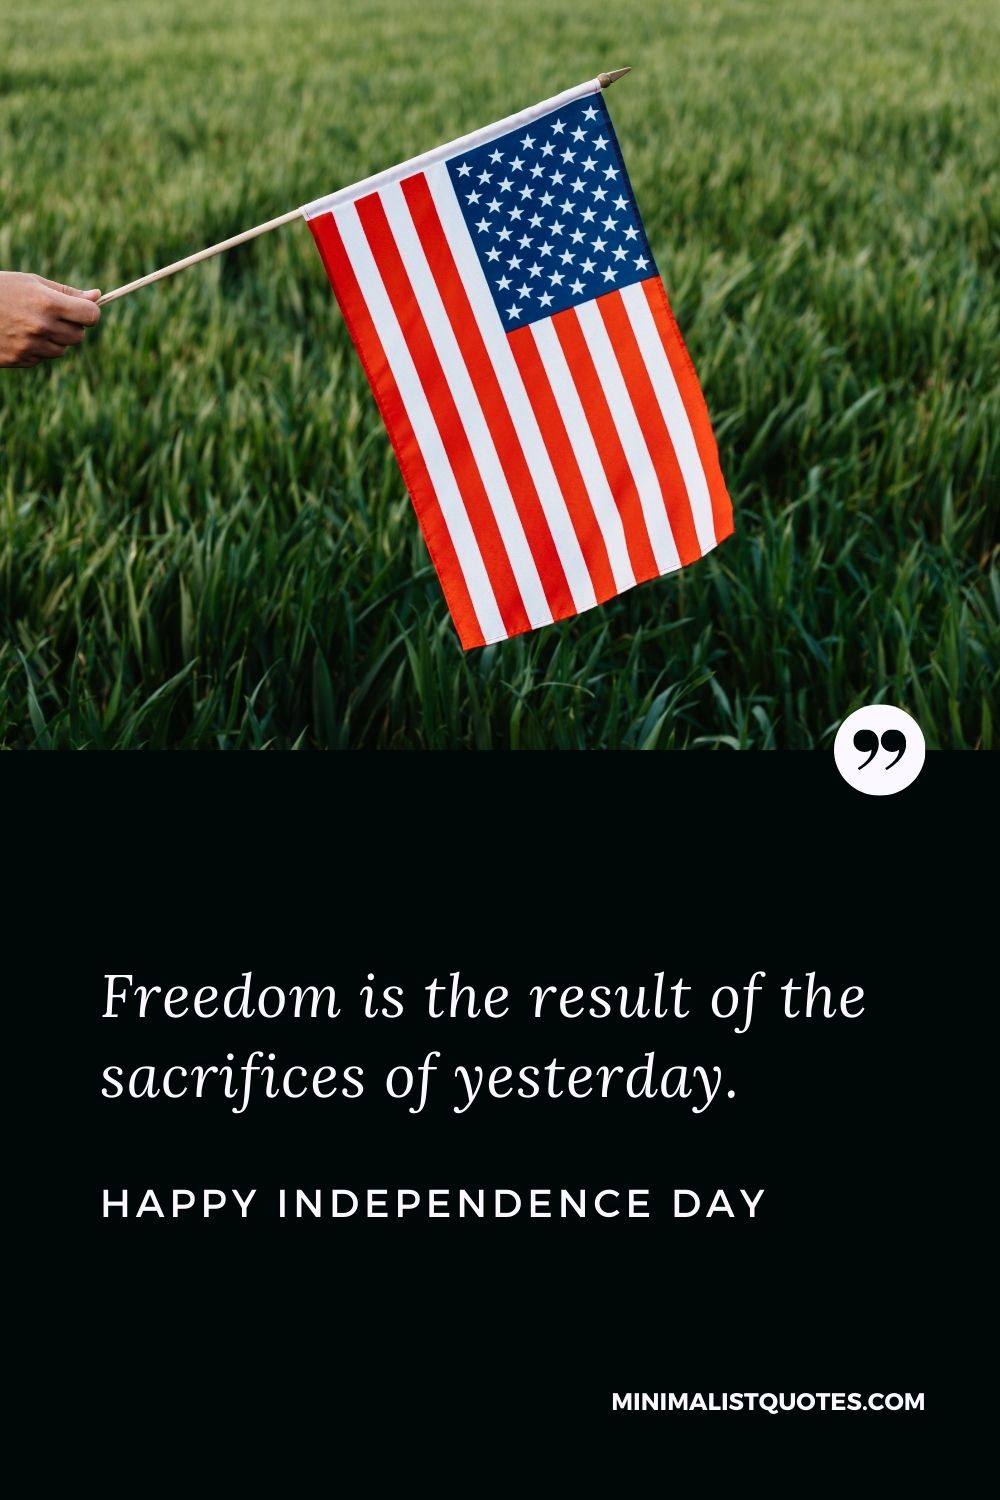 Independence Day wishes quotes with images: Freedom is the result of the sacrifices of yesterday. Happy Independence Day!